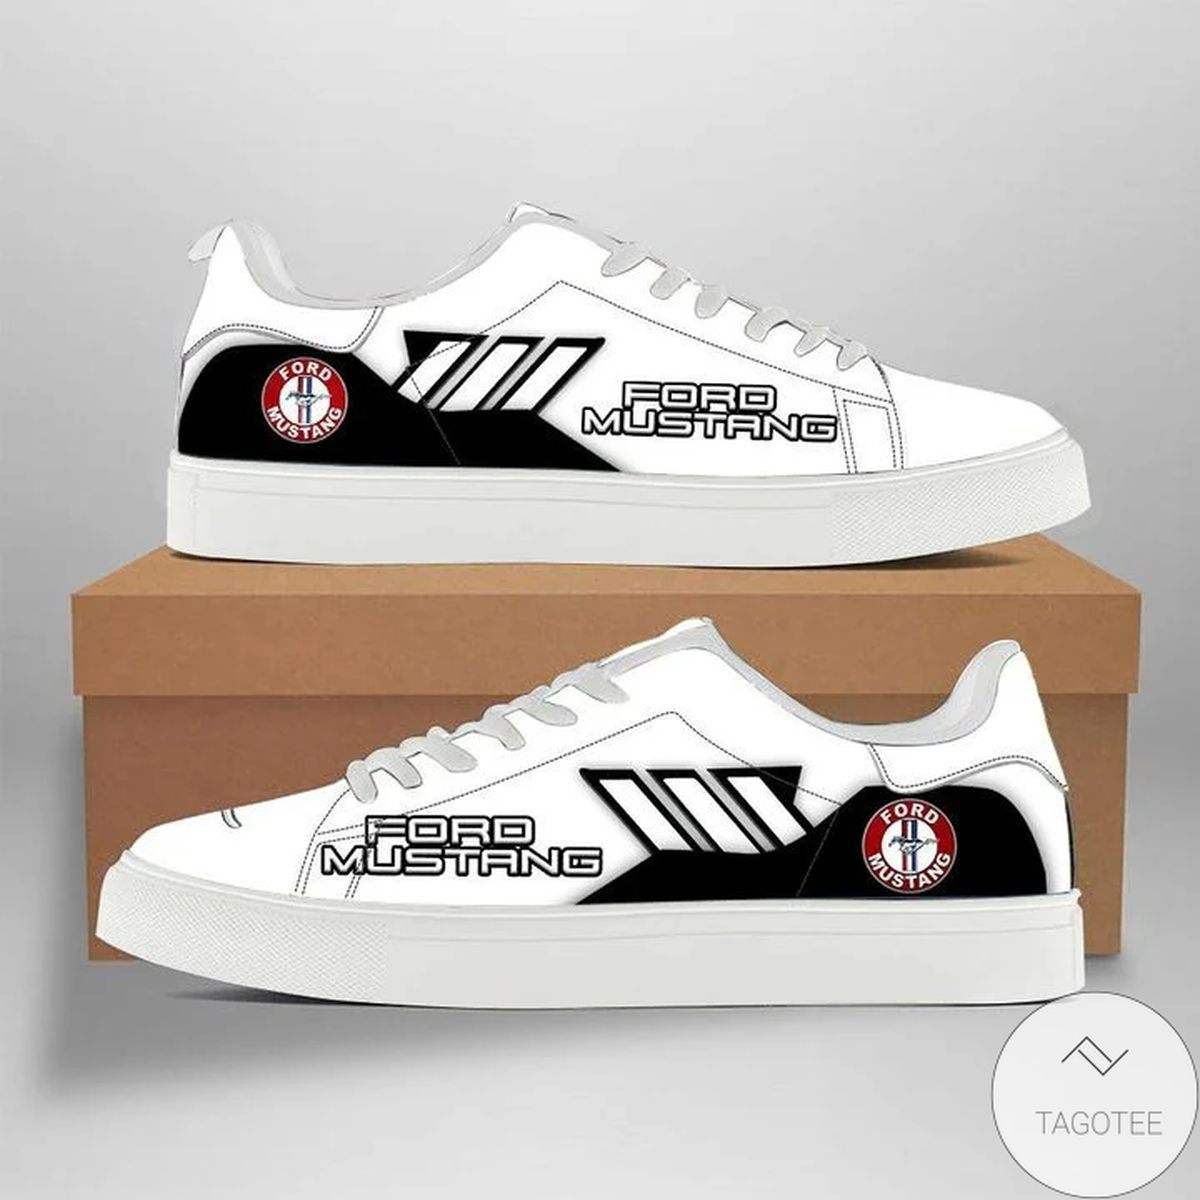 Drop Shipping Ford Mustang White Stan Smith Shoes